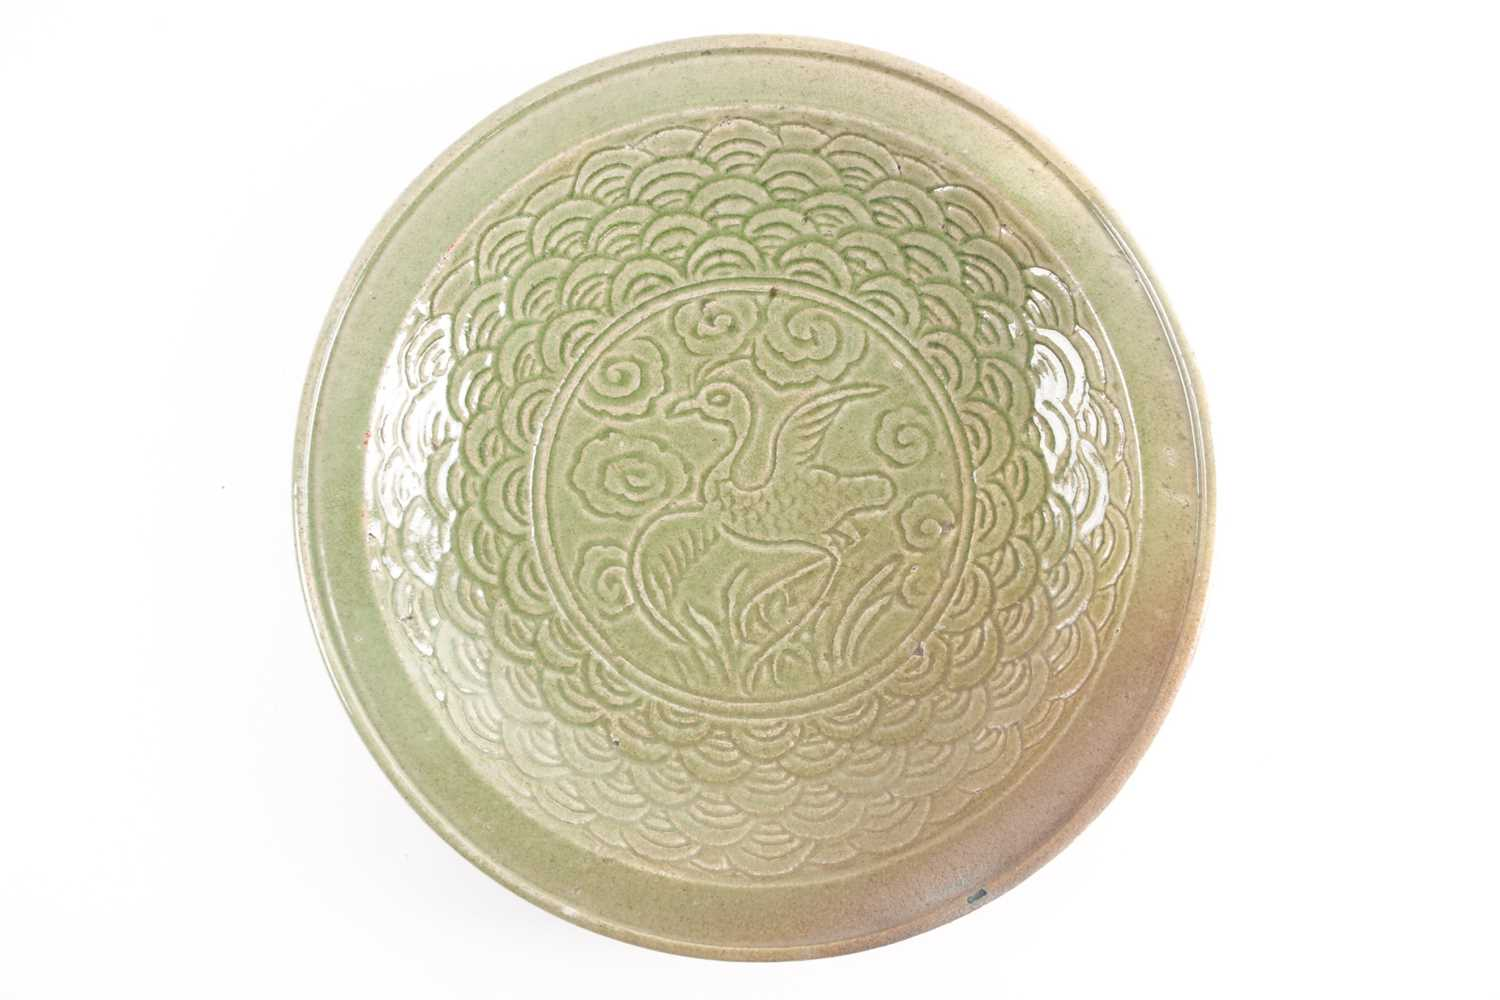 A circular celadon charger carved with a bird on a field of clouds within a stylized wave border